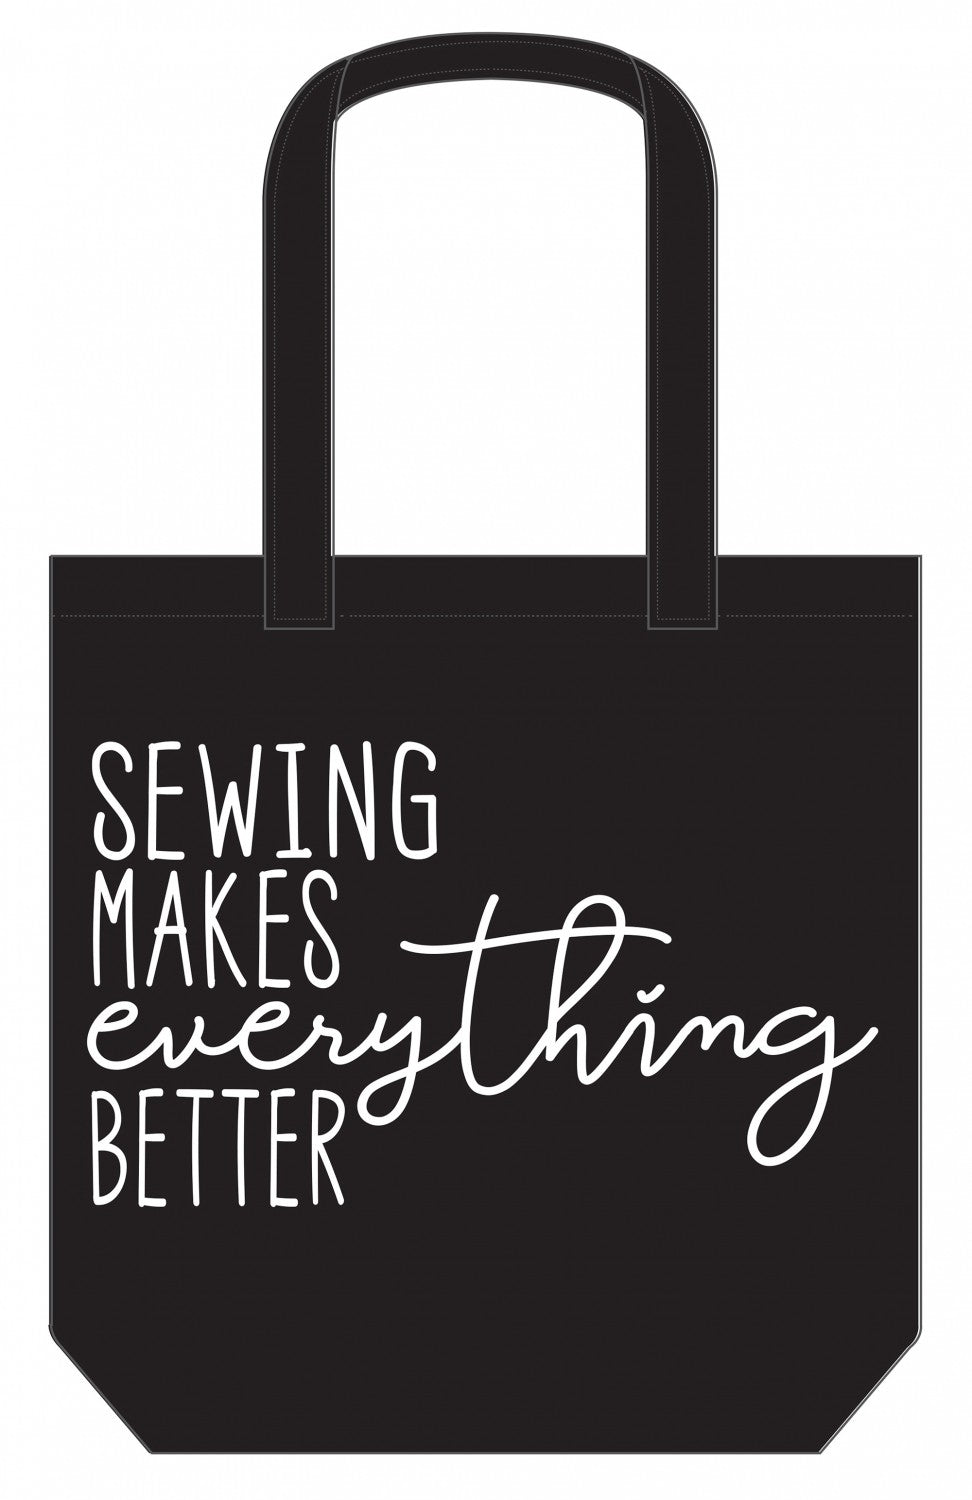 Sewing Makes Everything Better - Canvas Tote Bag